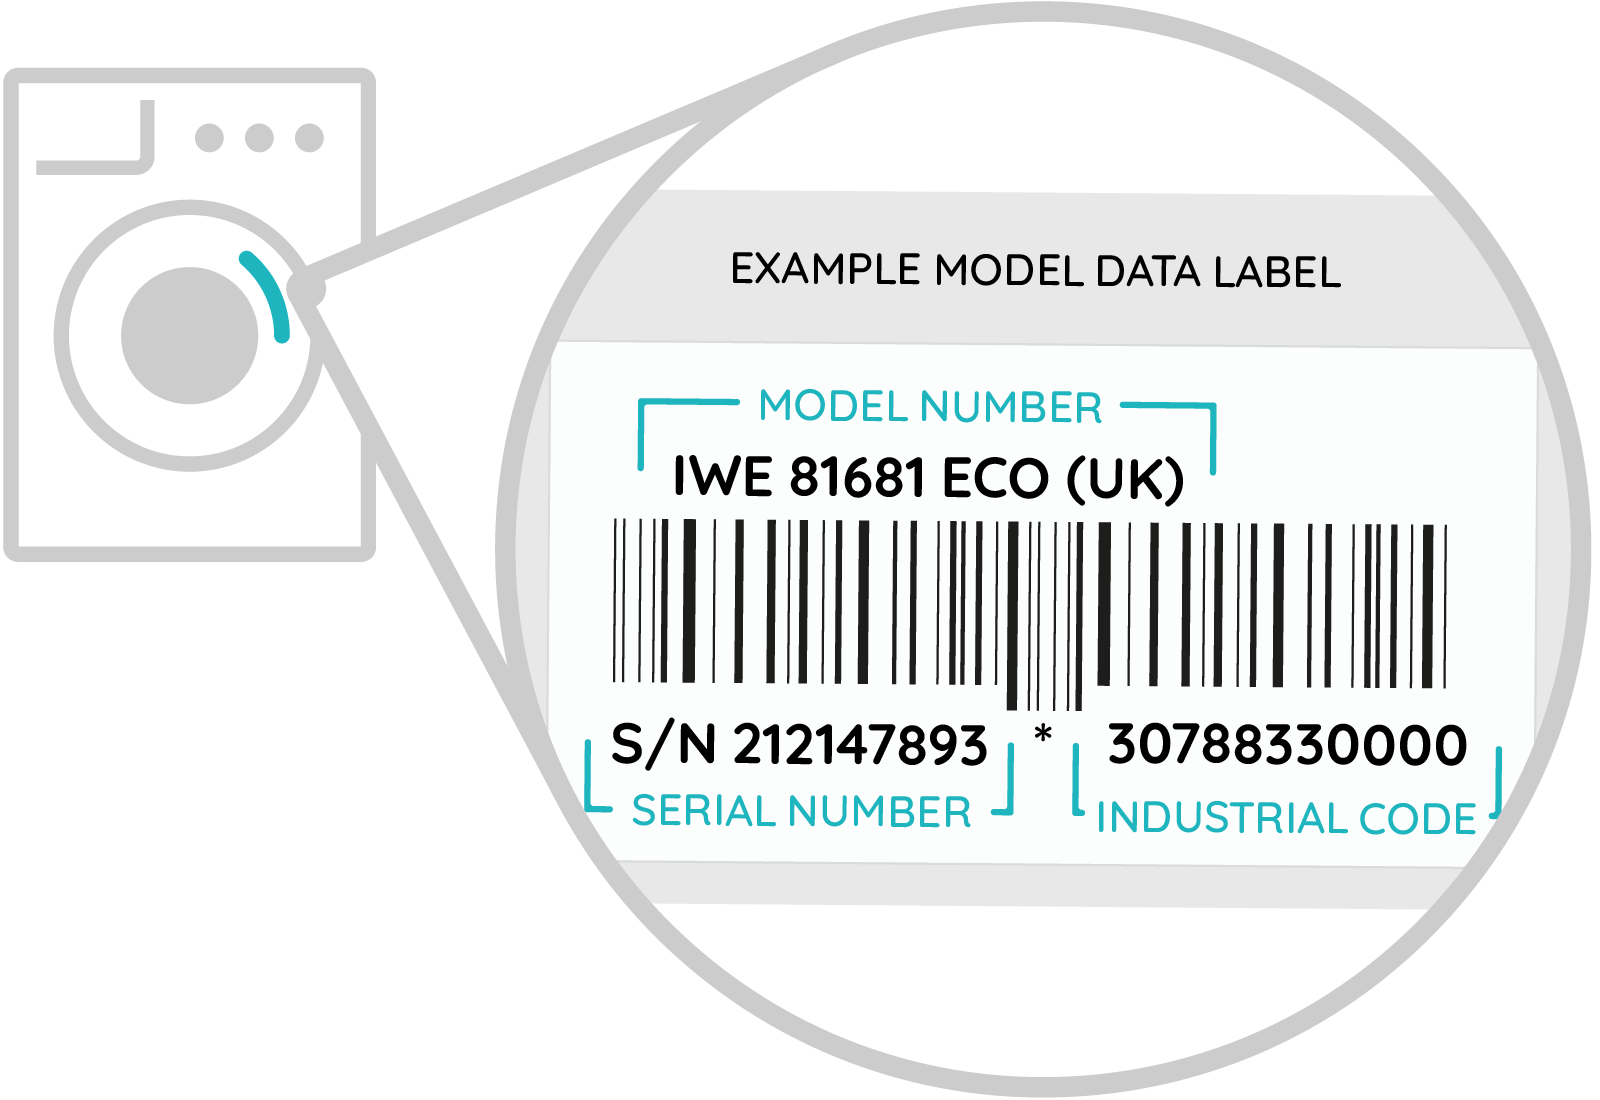 Find your serial number